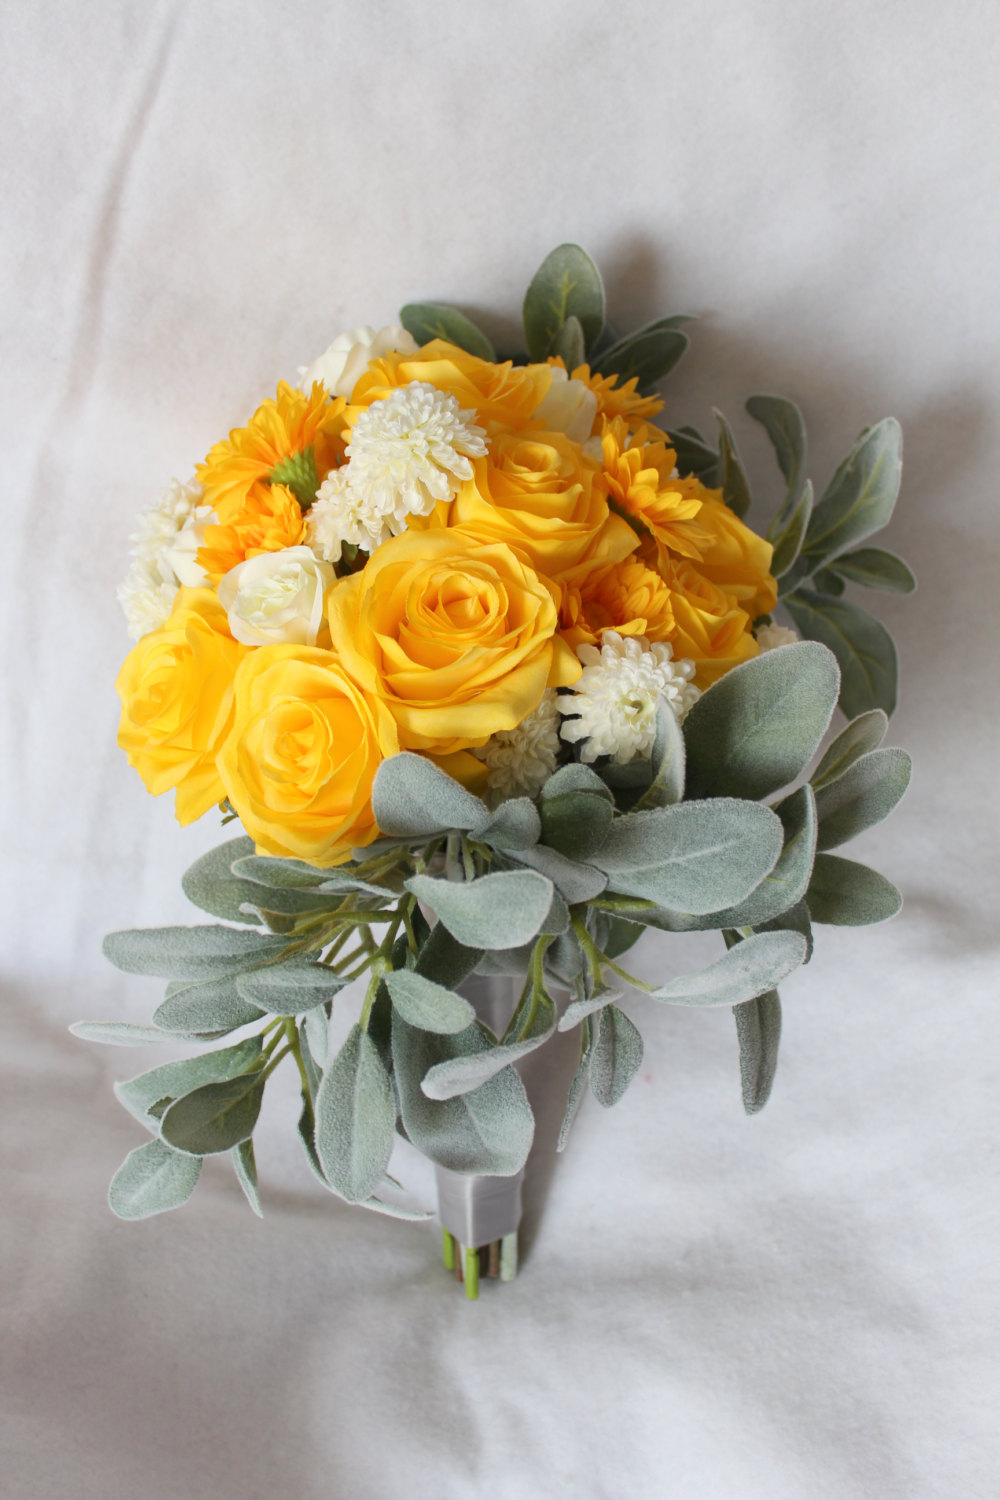 minneapolis-silk-florist-Yellow-White-Gray-Modified-Cascading-Silk-Flower-Bridal-Bouquet-&-Matching-Boutonniere.jpg